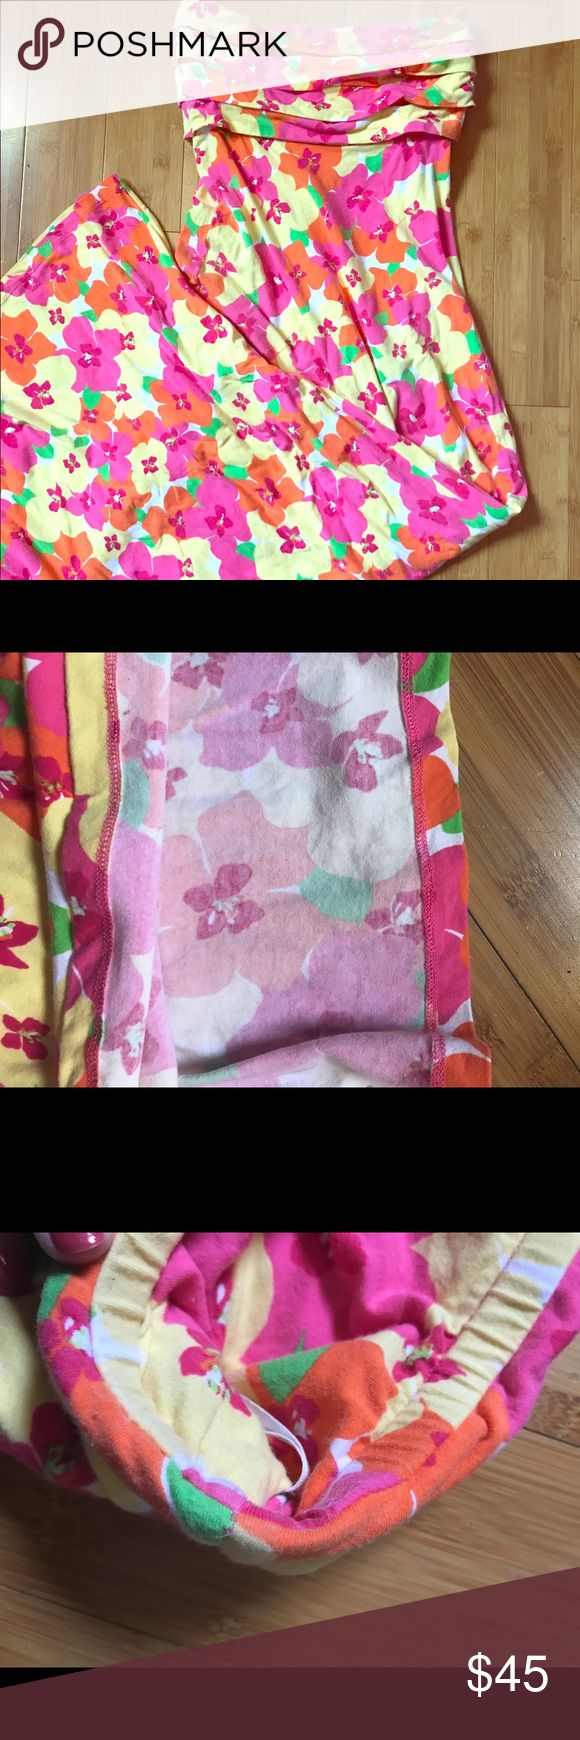 Lilly Pulitzer Strapless Maxi Dress This listing is for a Lilly Pulitzer Maxi Dress in Hotty Pink Floral Punch in a size small. No wear on bottom hem. It has NOT been shortened. Lilly Pulitzer Dresses Maxi